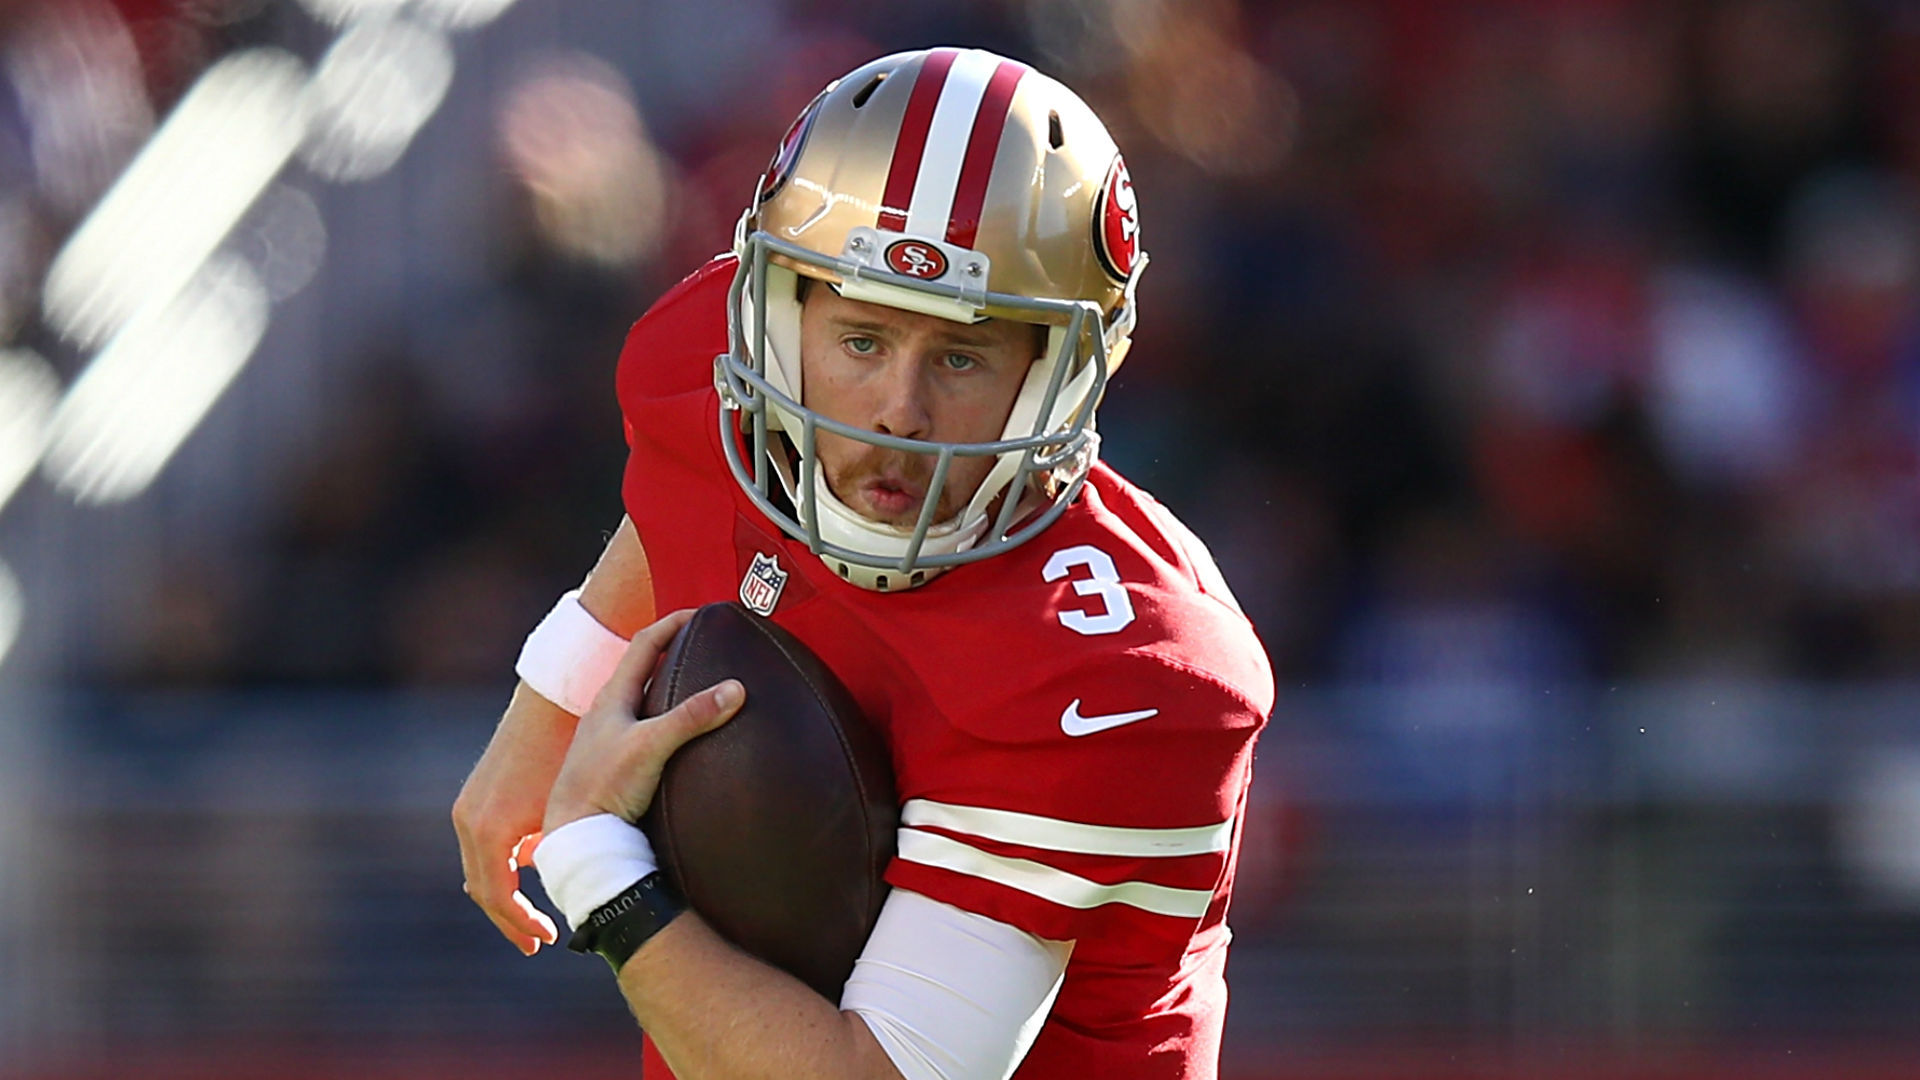 CJ Beathard, not Jimmy Garoppolo, named 49ers starter vs. Seahawks